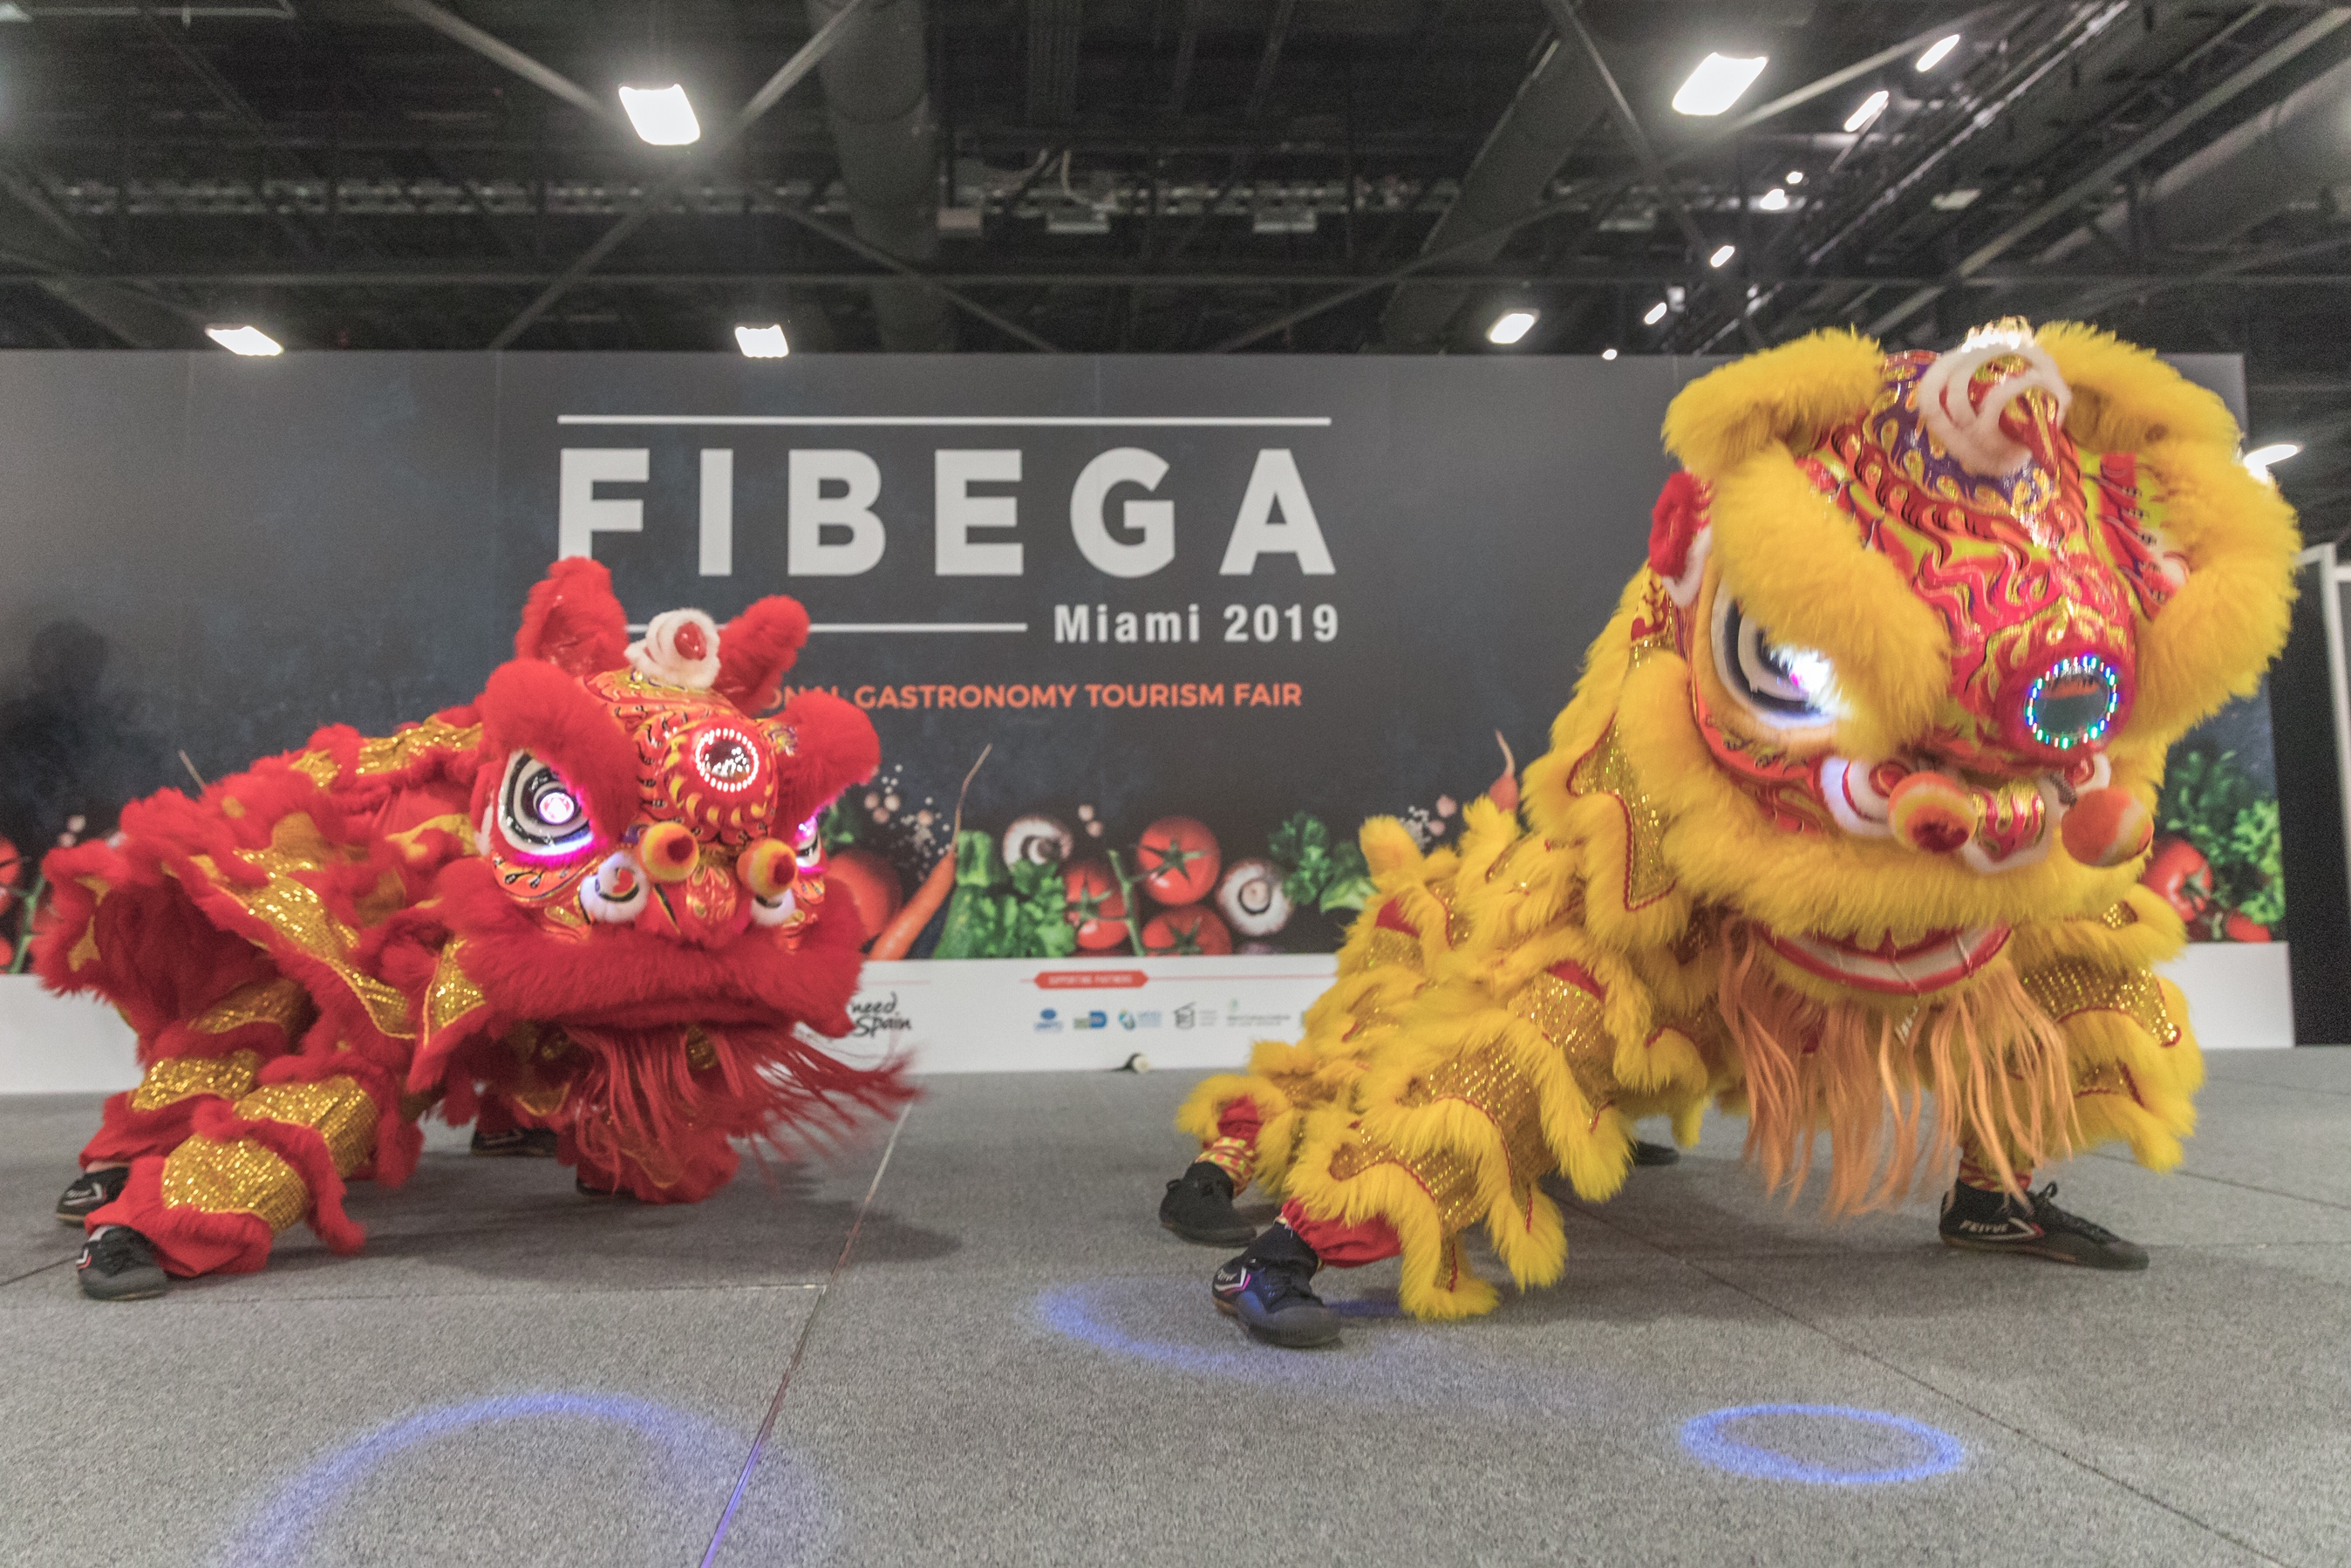 A World of Flavors at FIBEGA Miami 2019